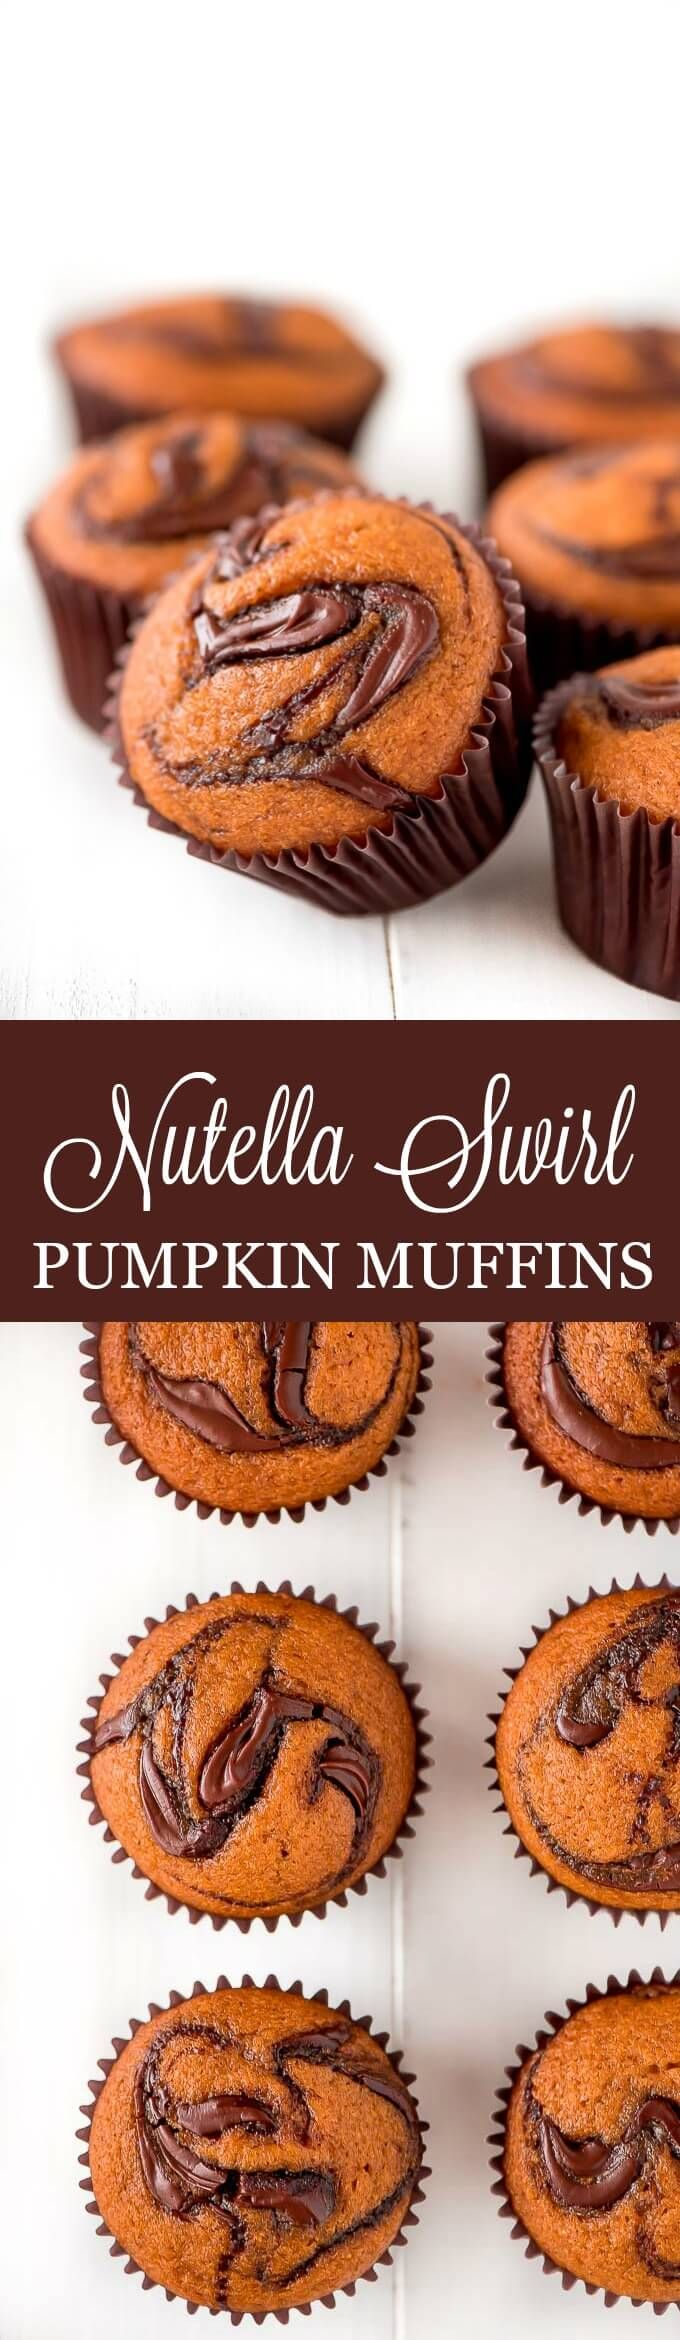 Start your day with a batch of Nutella Swirl Pumpkin Muffins! This moist pumpkin muffin is taken to the next level with swirls of Nutella on top and middle.